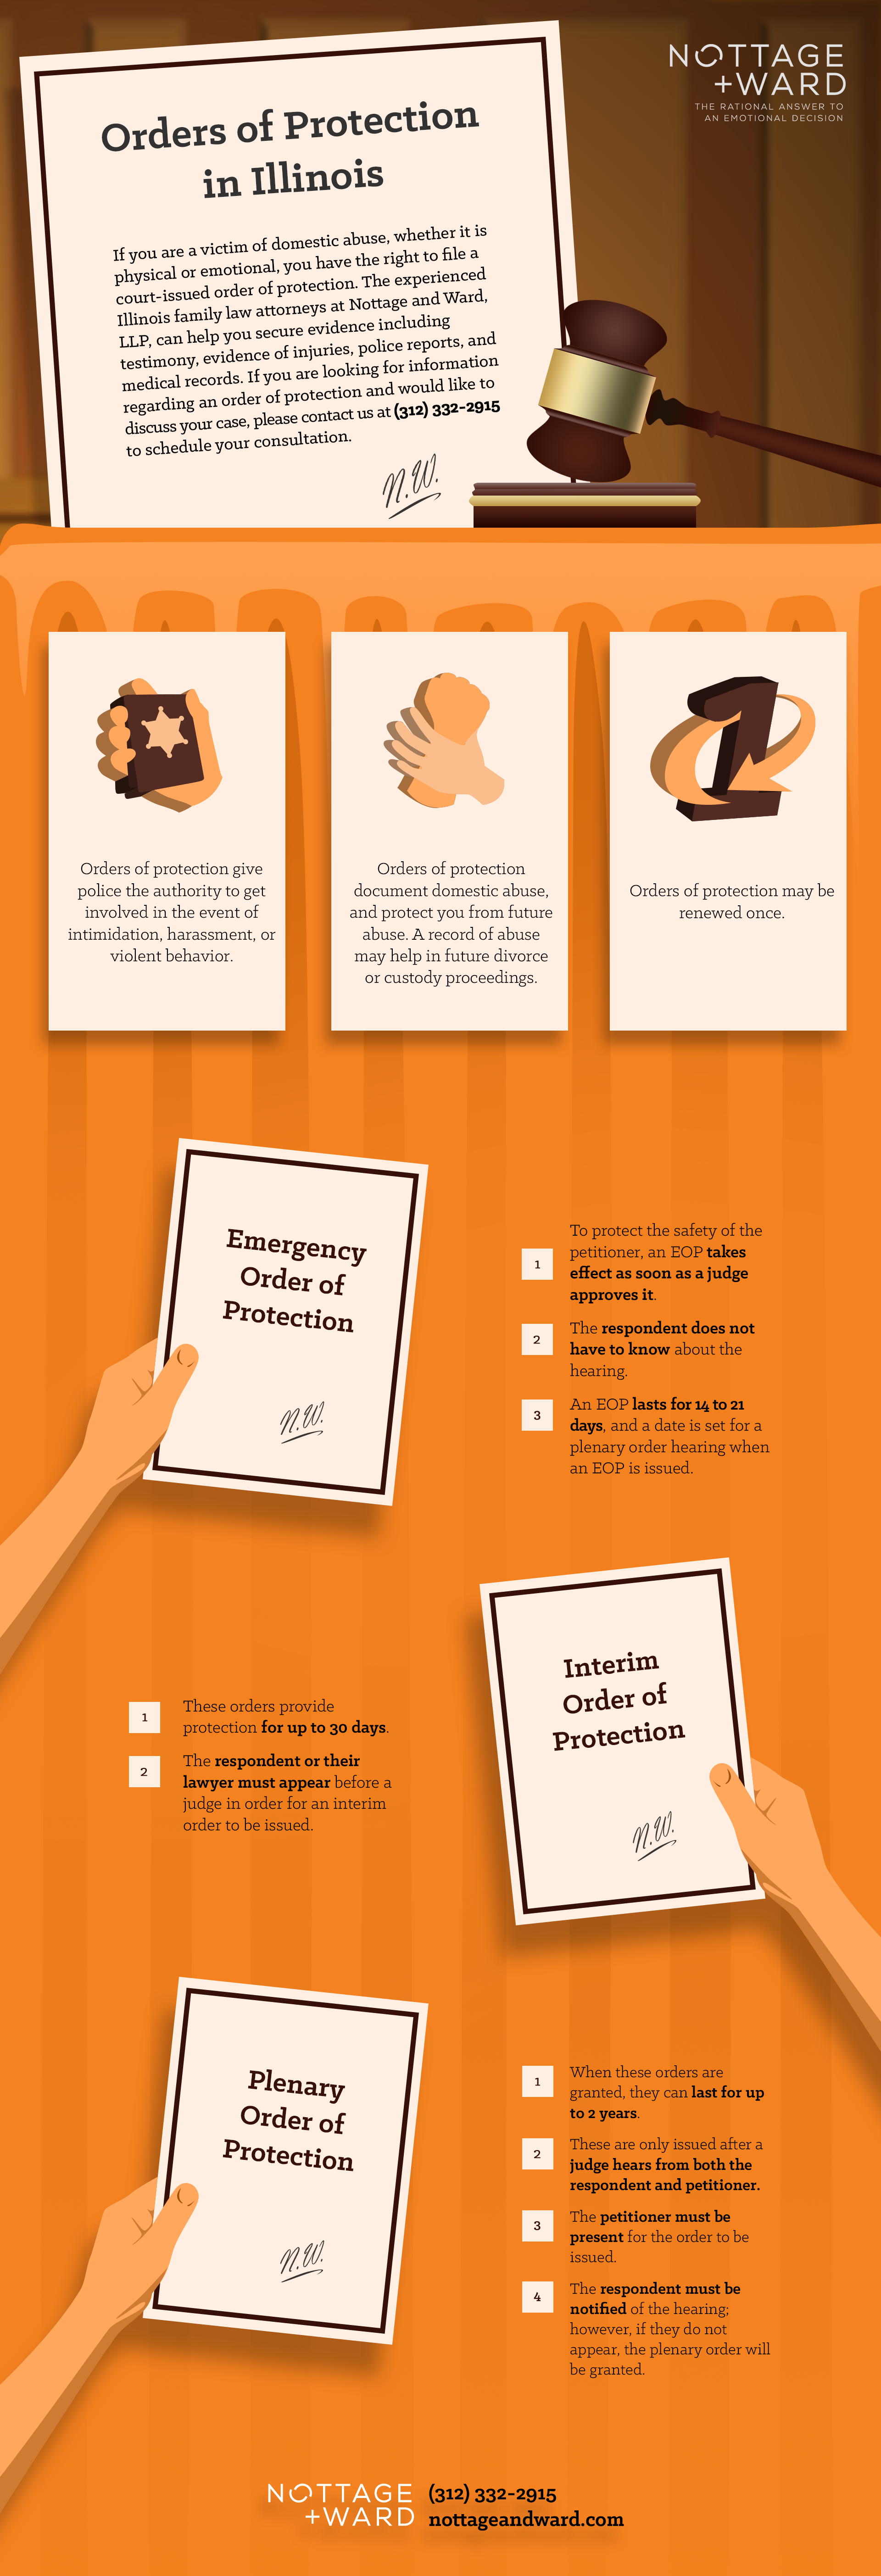 Nottage and Ward, LLP Presents: Order of Protection Infographic